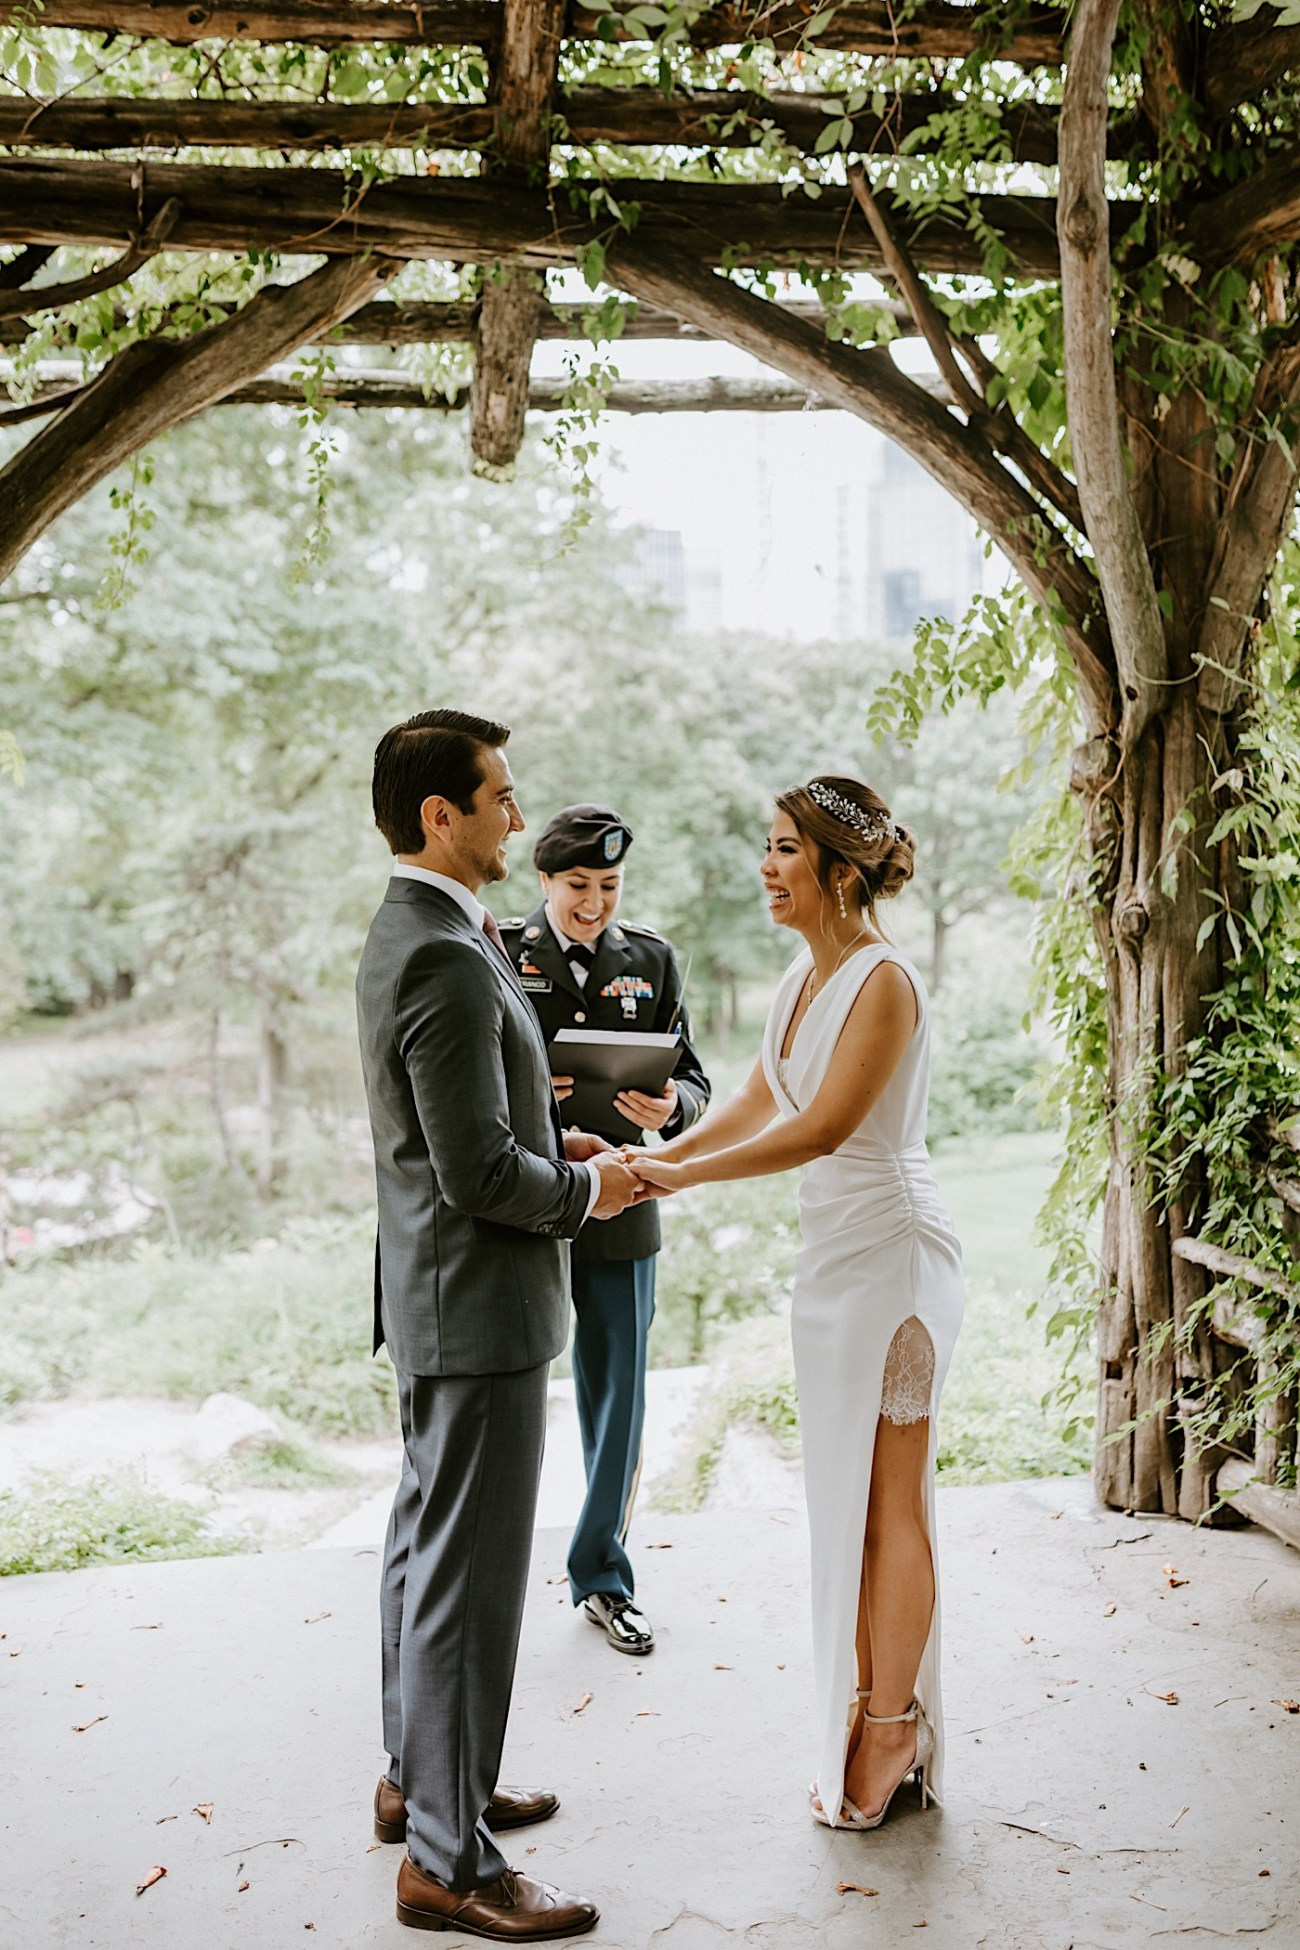 Central Park Elopement NYC Wedding Photographer Central Park Wedding Photos 25